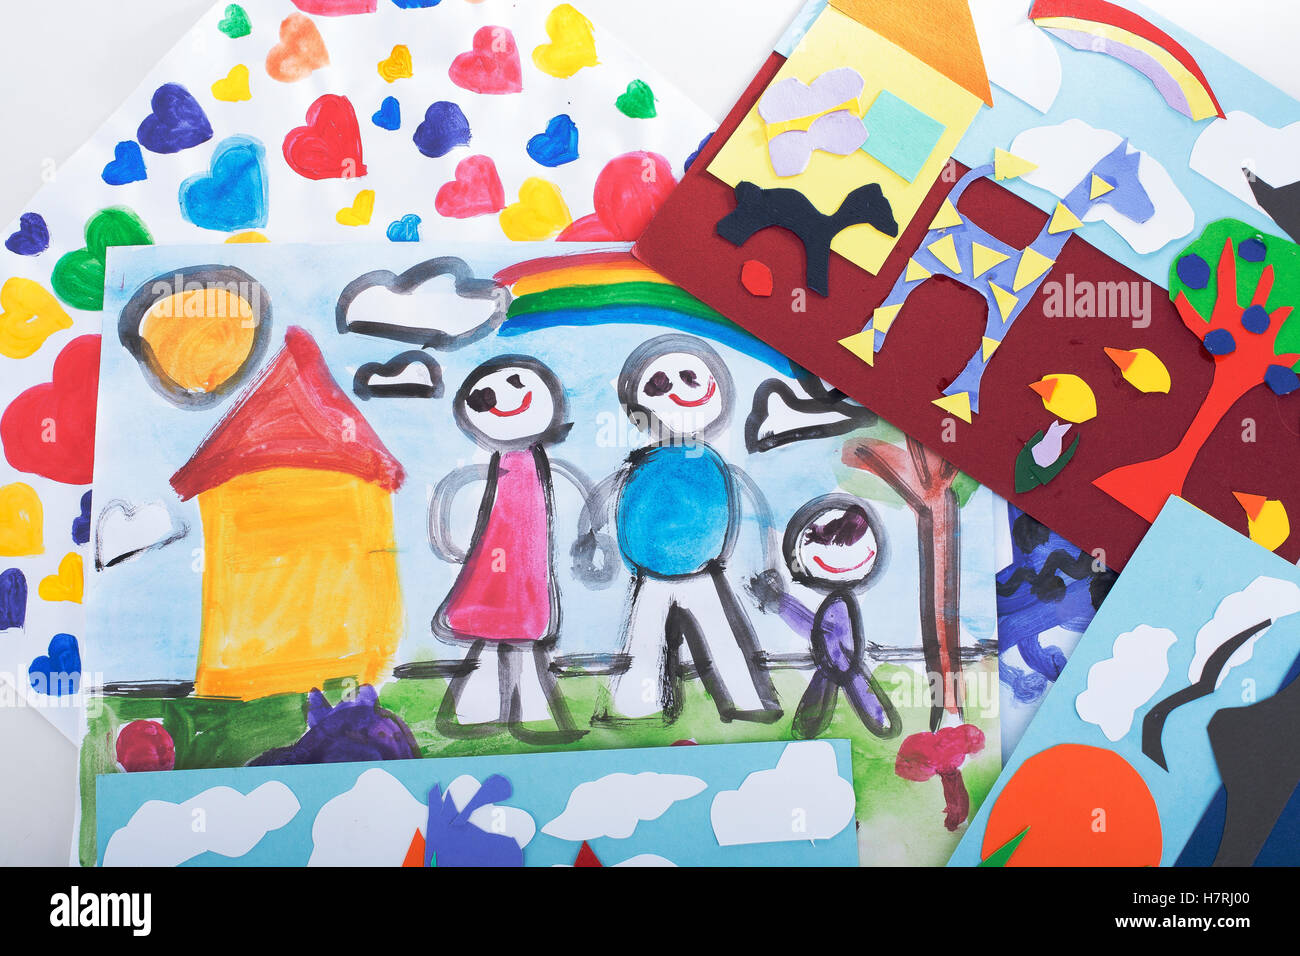 children painting drawing and collage with colorful paper beautiful child drawings rainbow fantasy animal - Children Painting Pictures